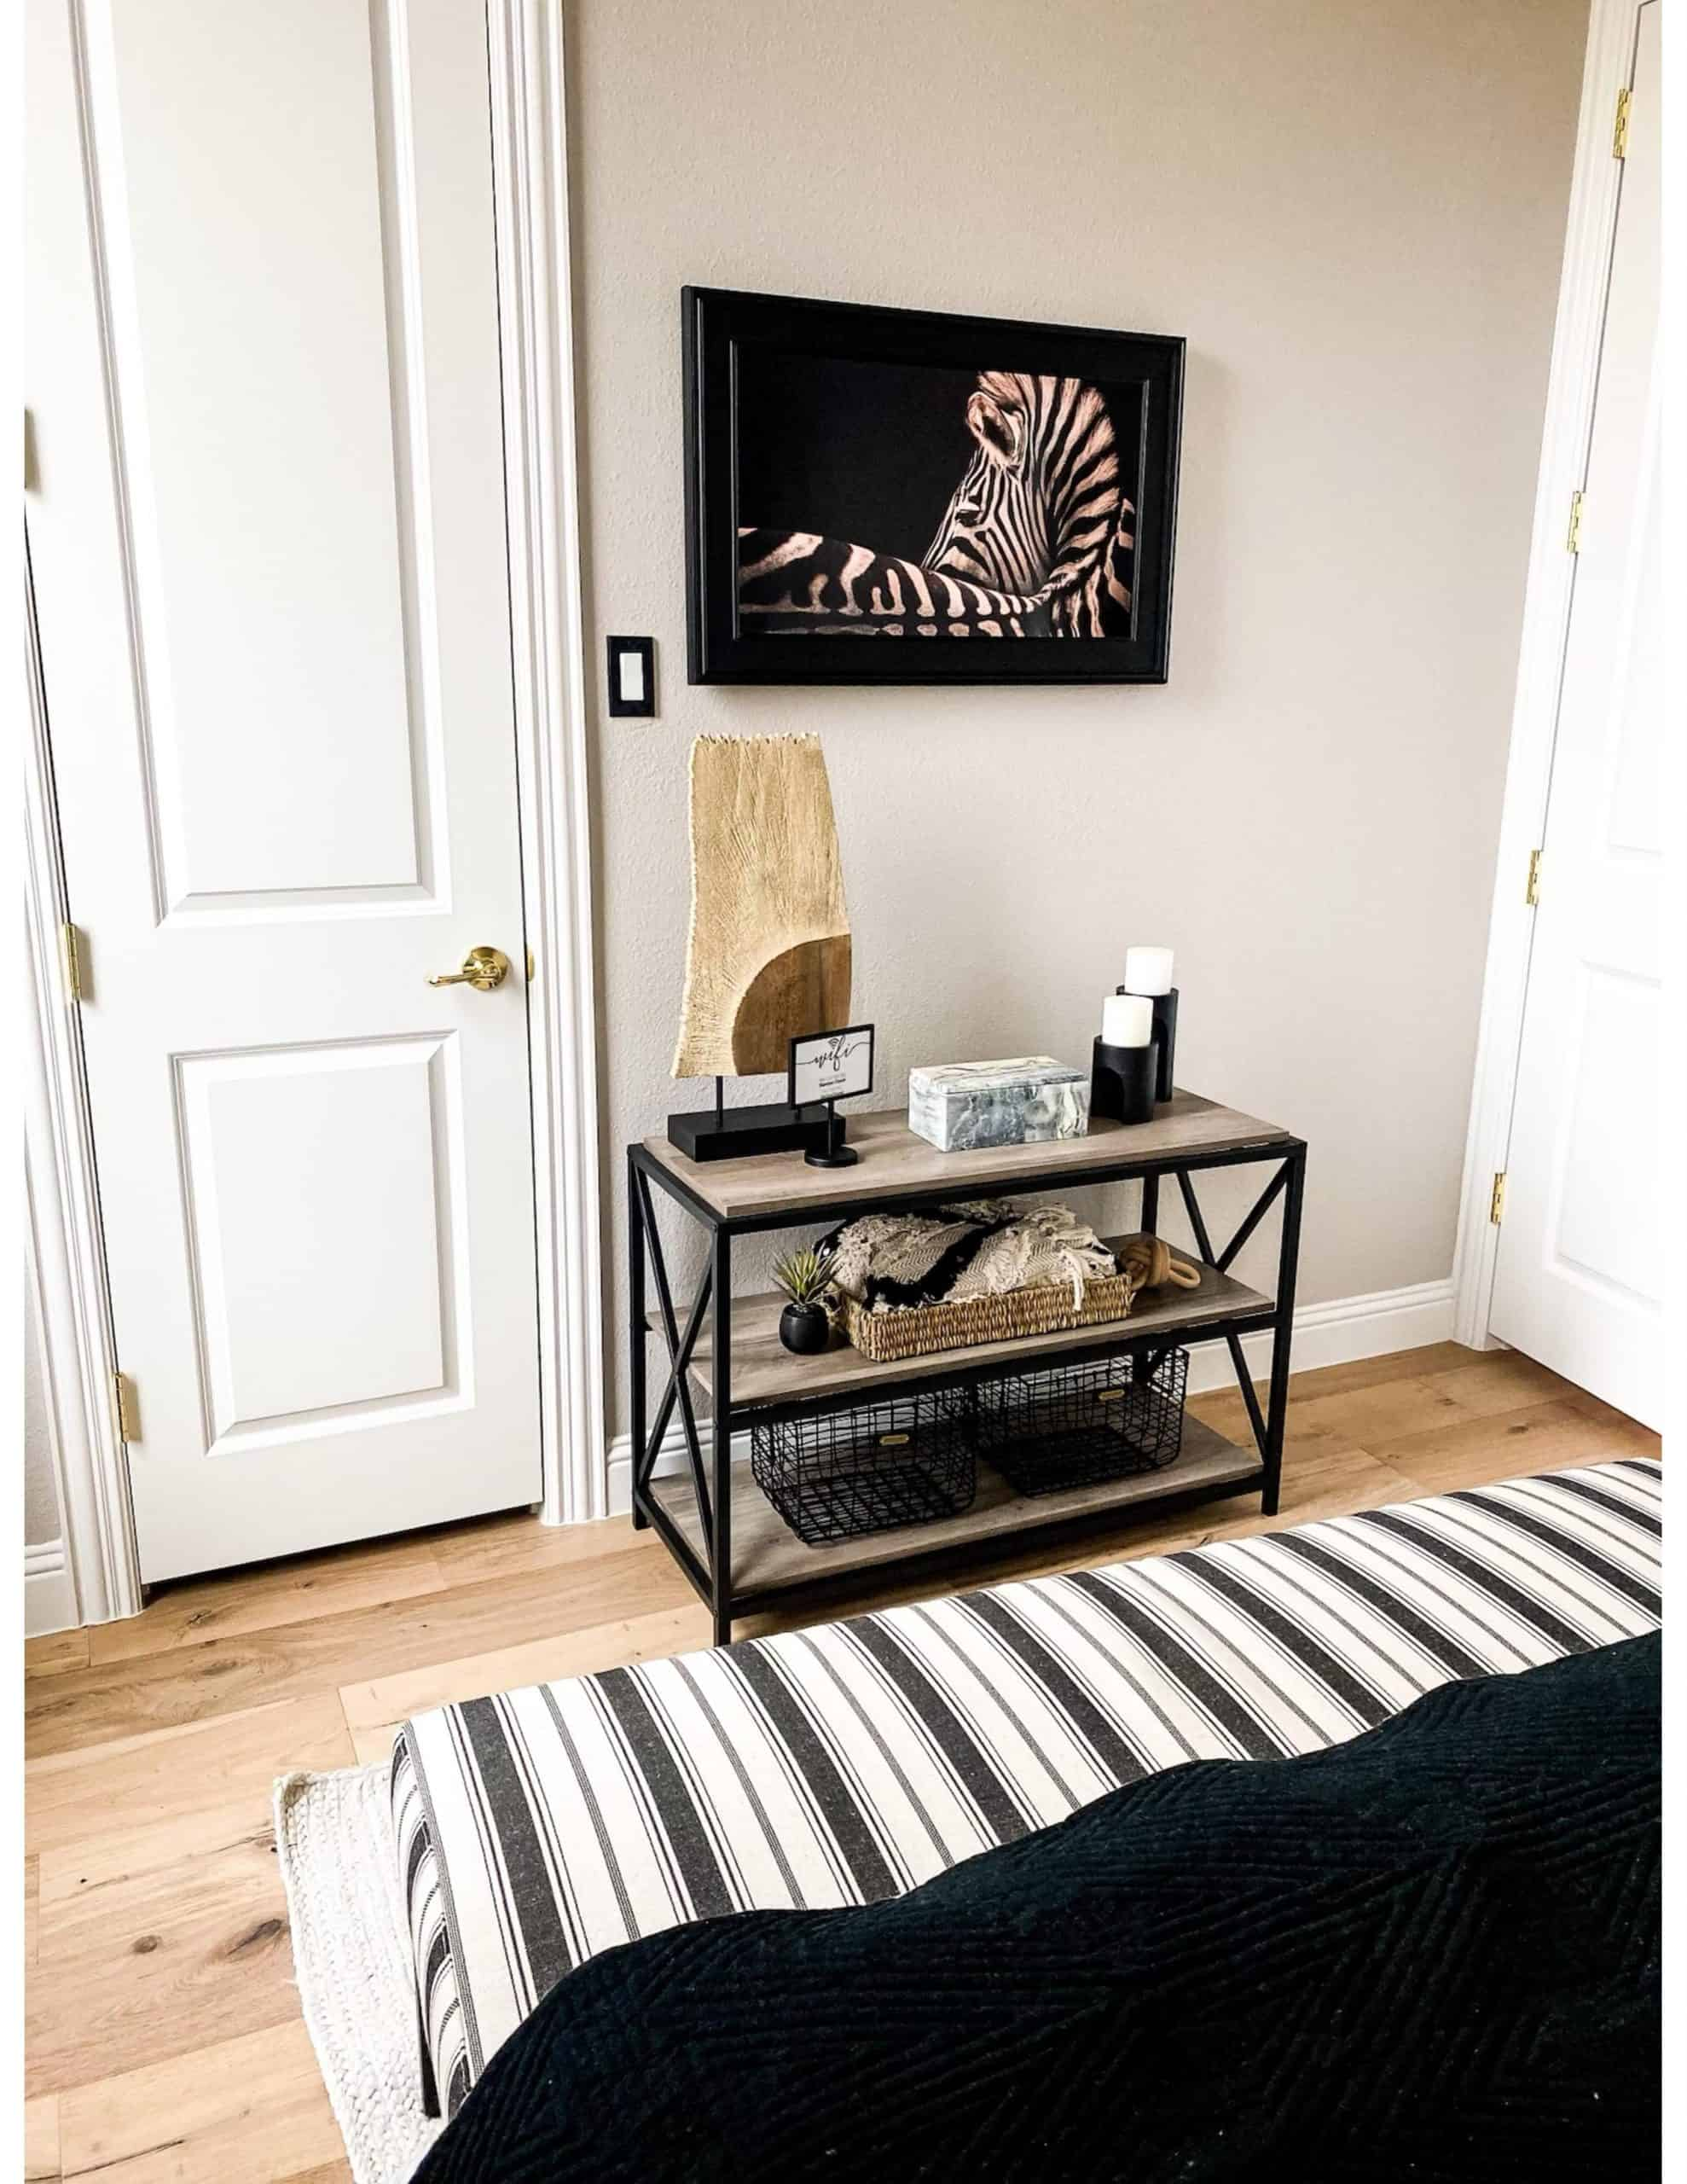 Modern Guest Bedroom by popular Dallas life and style blog, Glamorous Versatility: image of a guest bedroom decorated with framed zebra photo, black and white stripe bench, and rustic wood and metal table decorated with candles, sea grass basket, and black metal baskets.